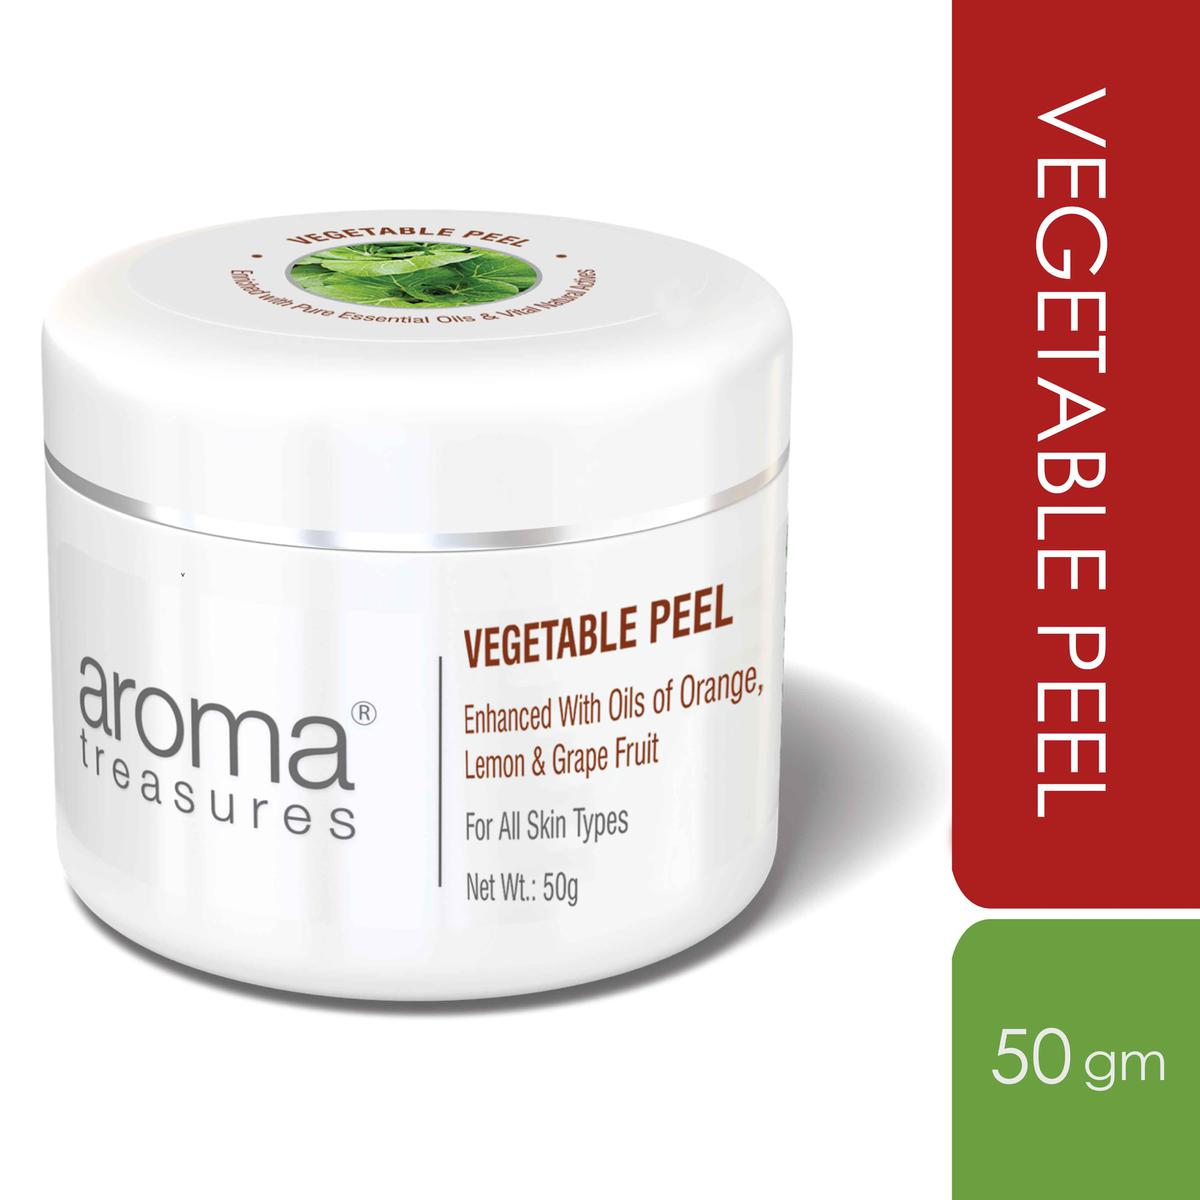 Aroma Treasures Vegetable Peel - 50 Gm